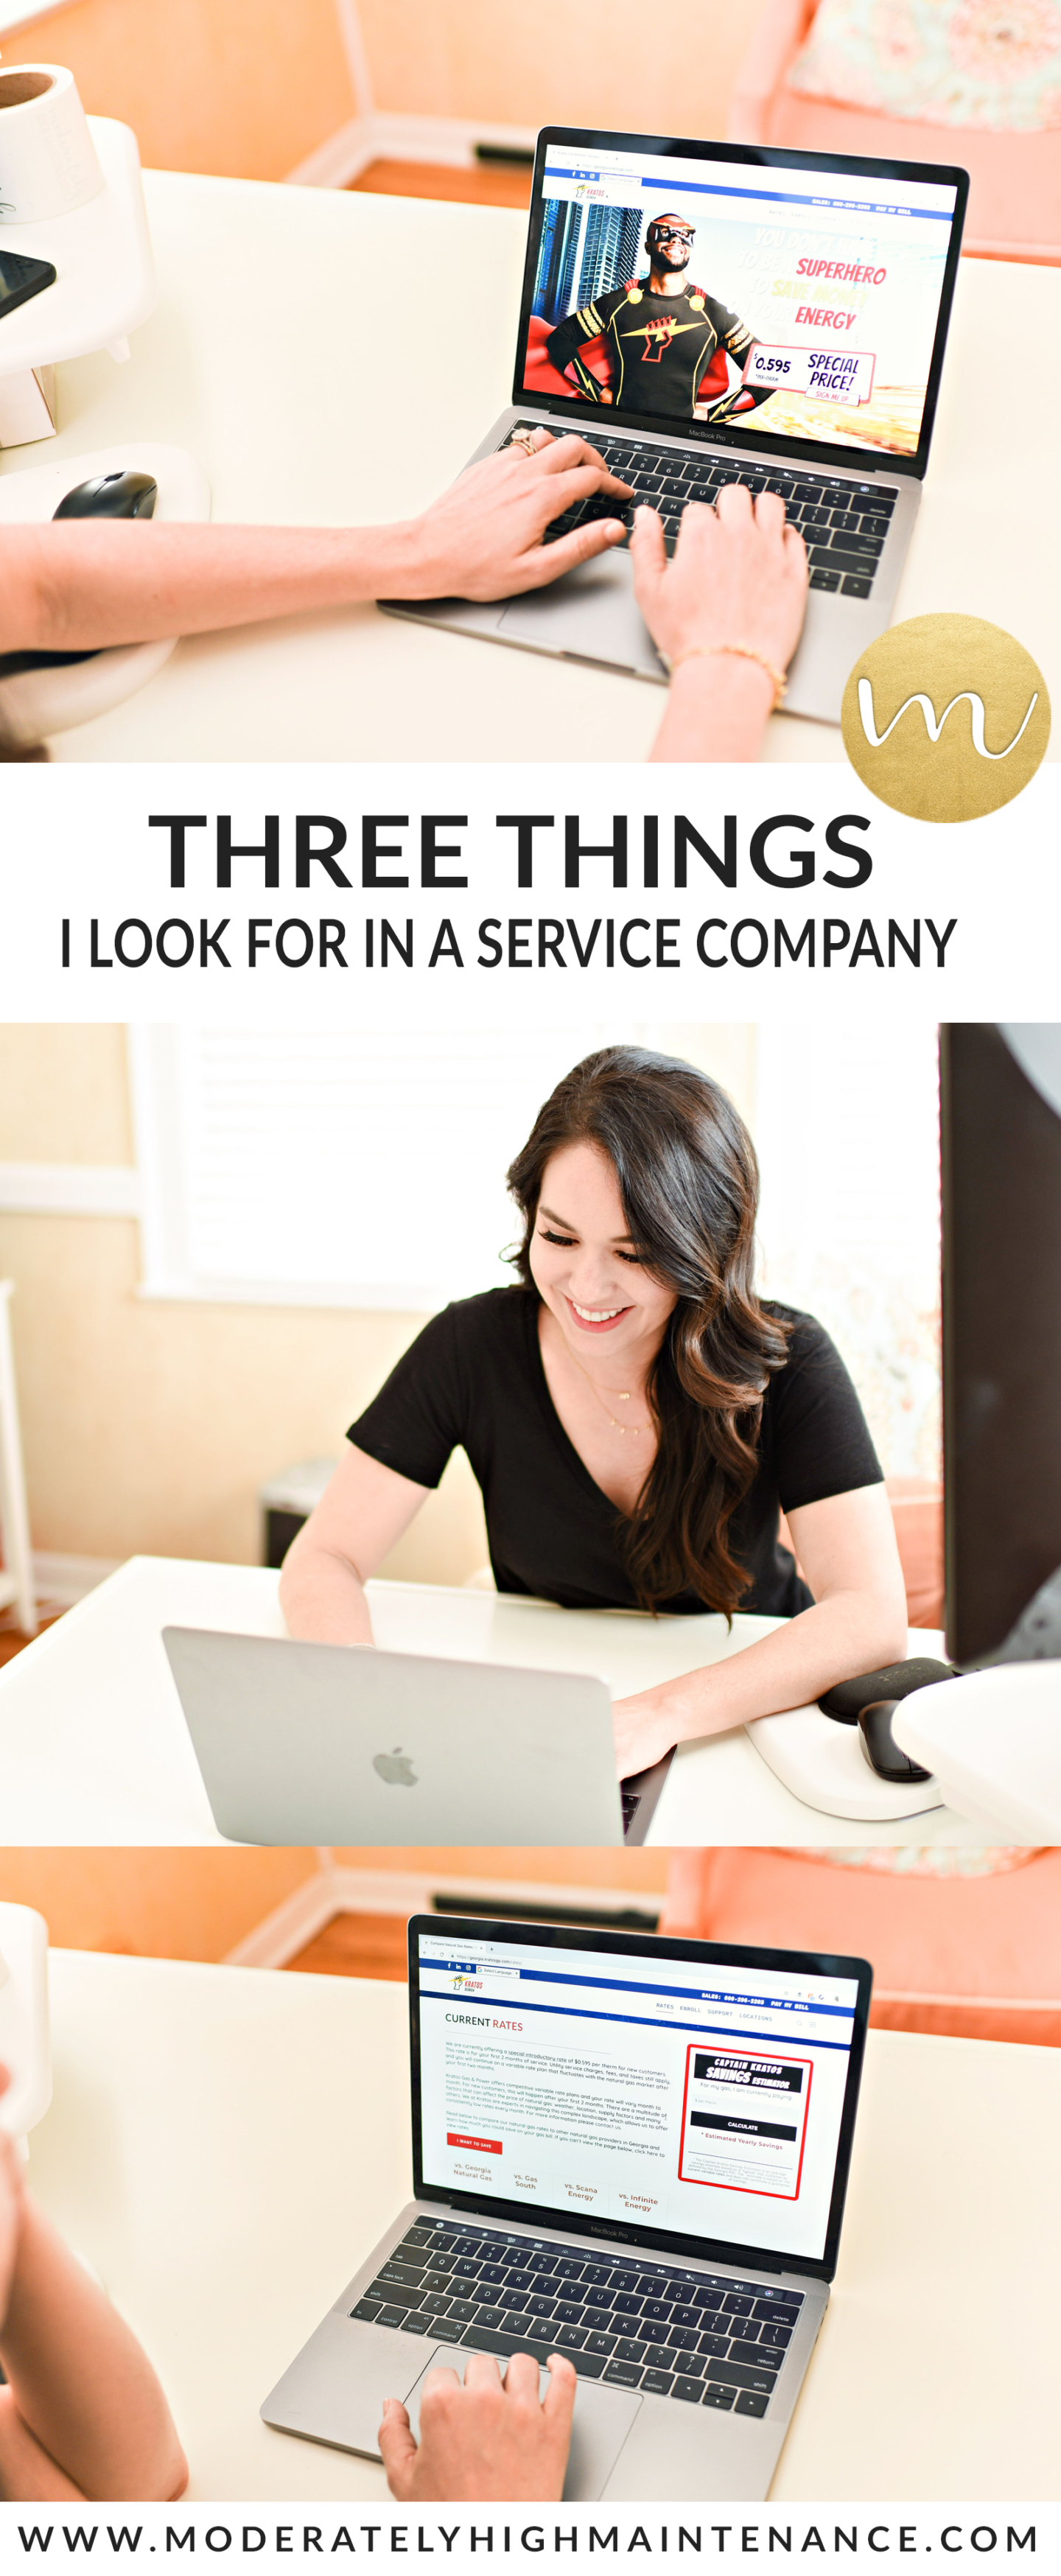 We are in the process researching different energy companies for our new property. Here are 3 things I look for in a service company.